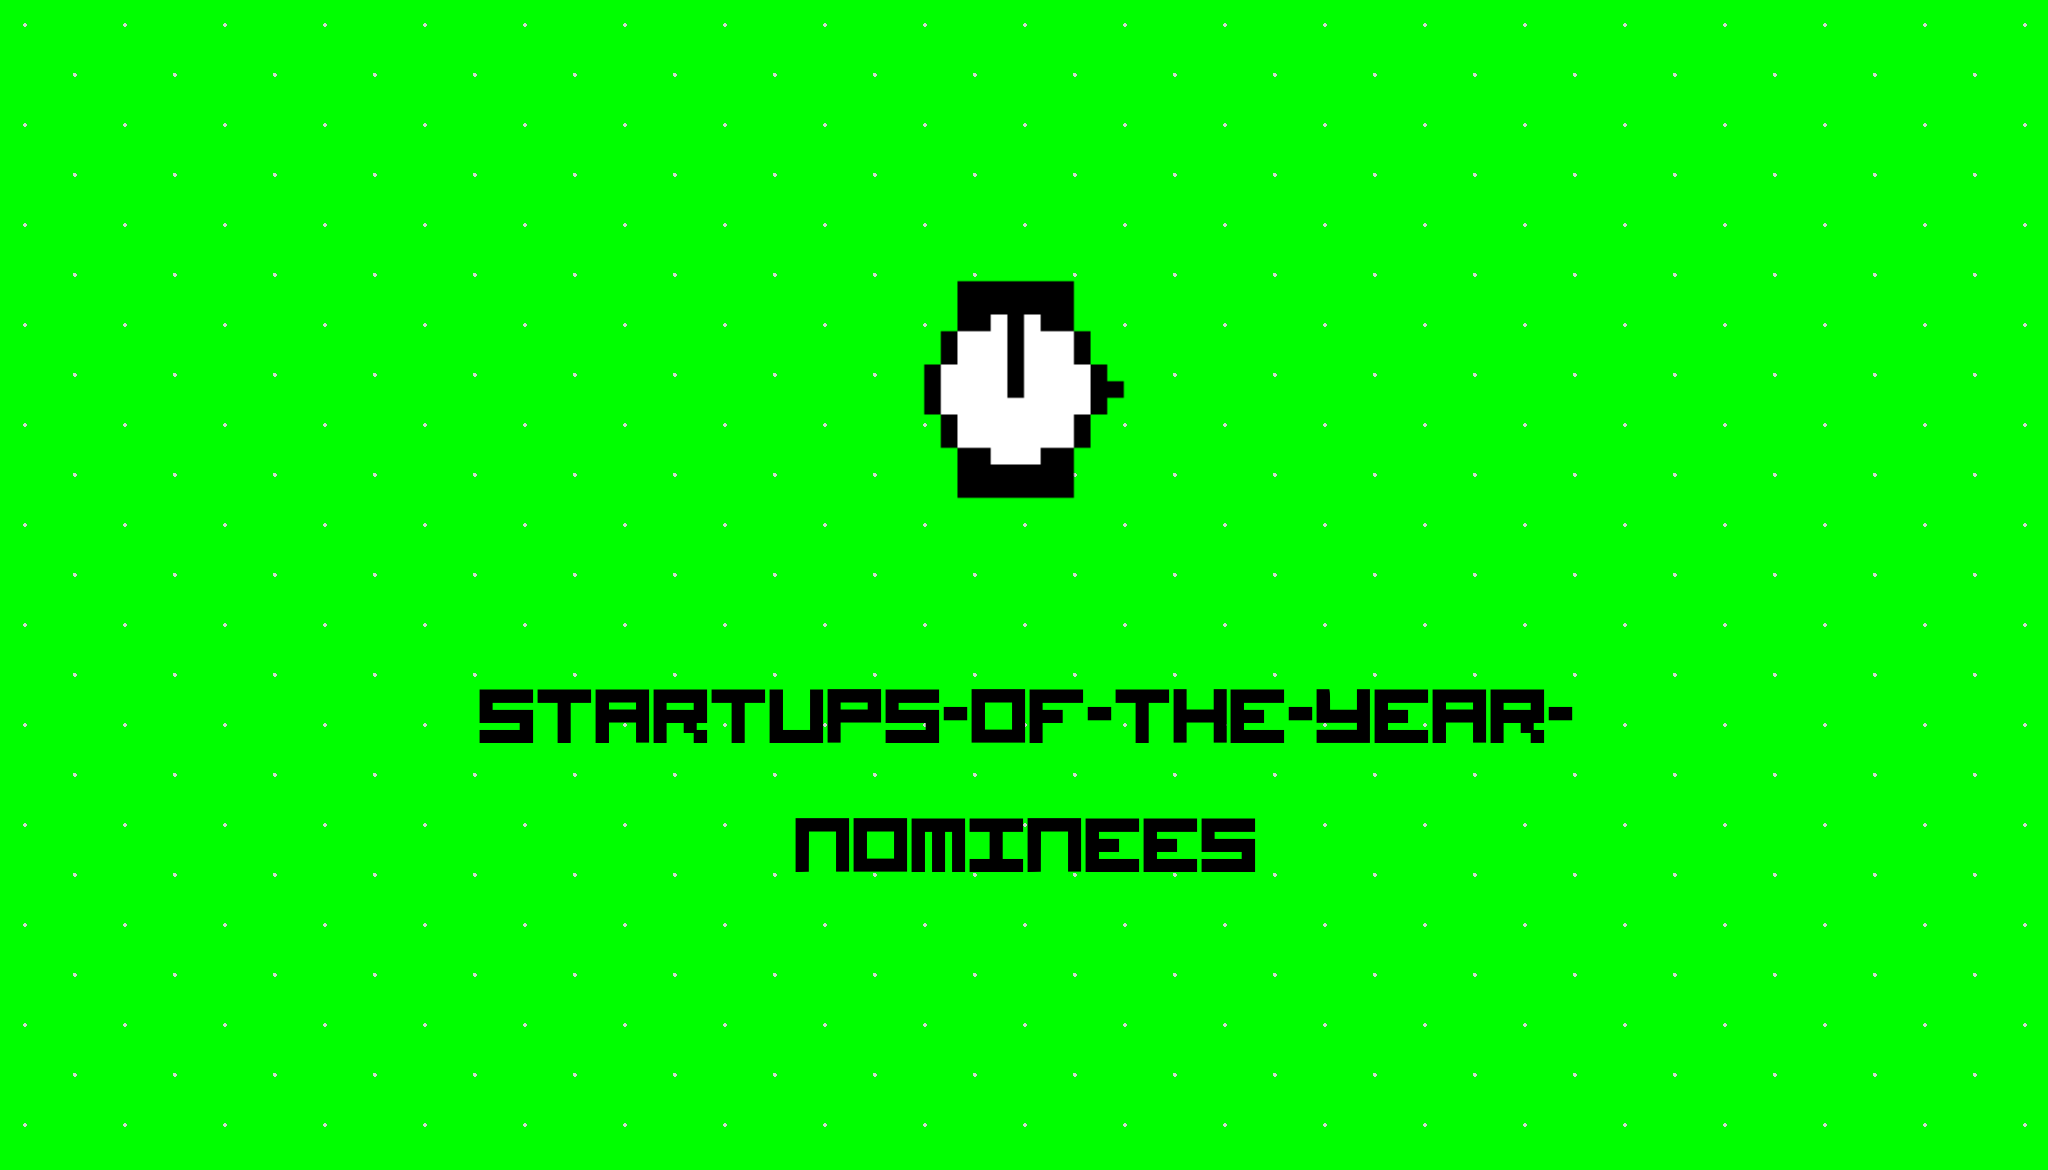 #startups-of-the-year-nominees stories | Hacker Noon